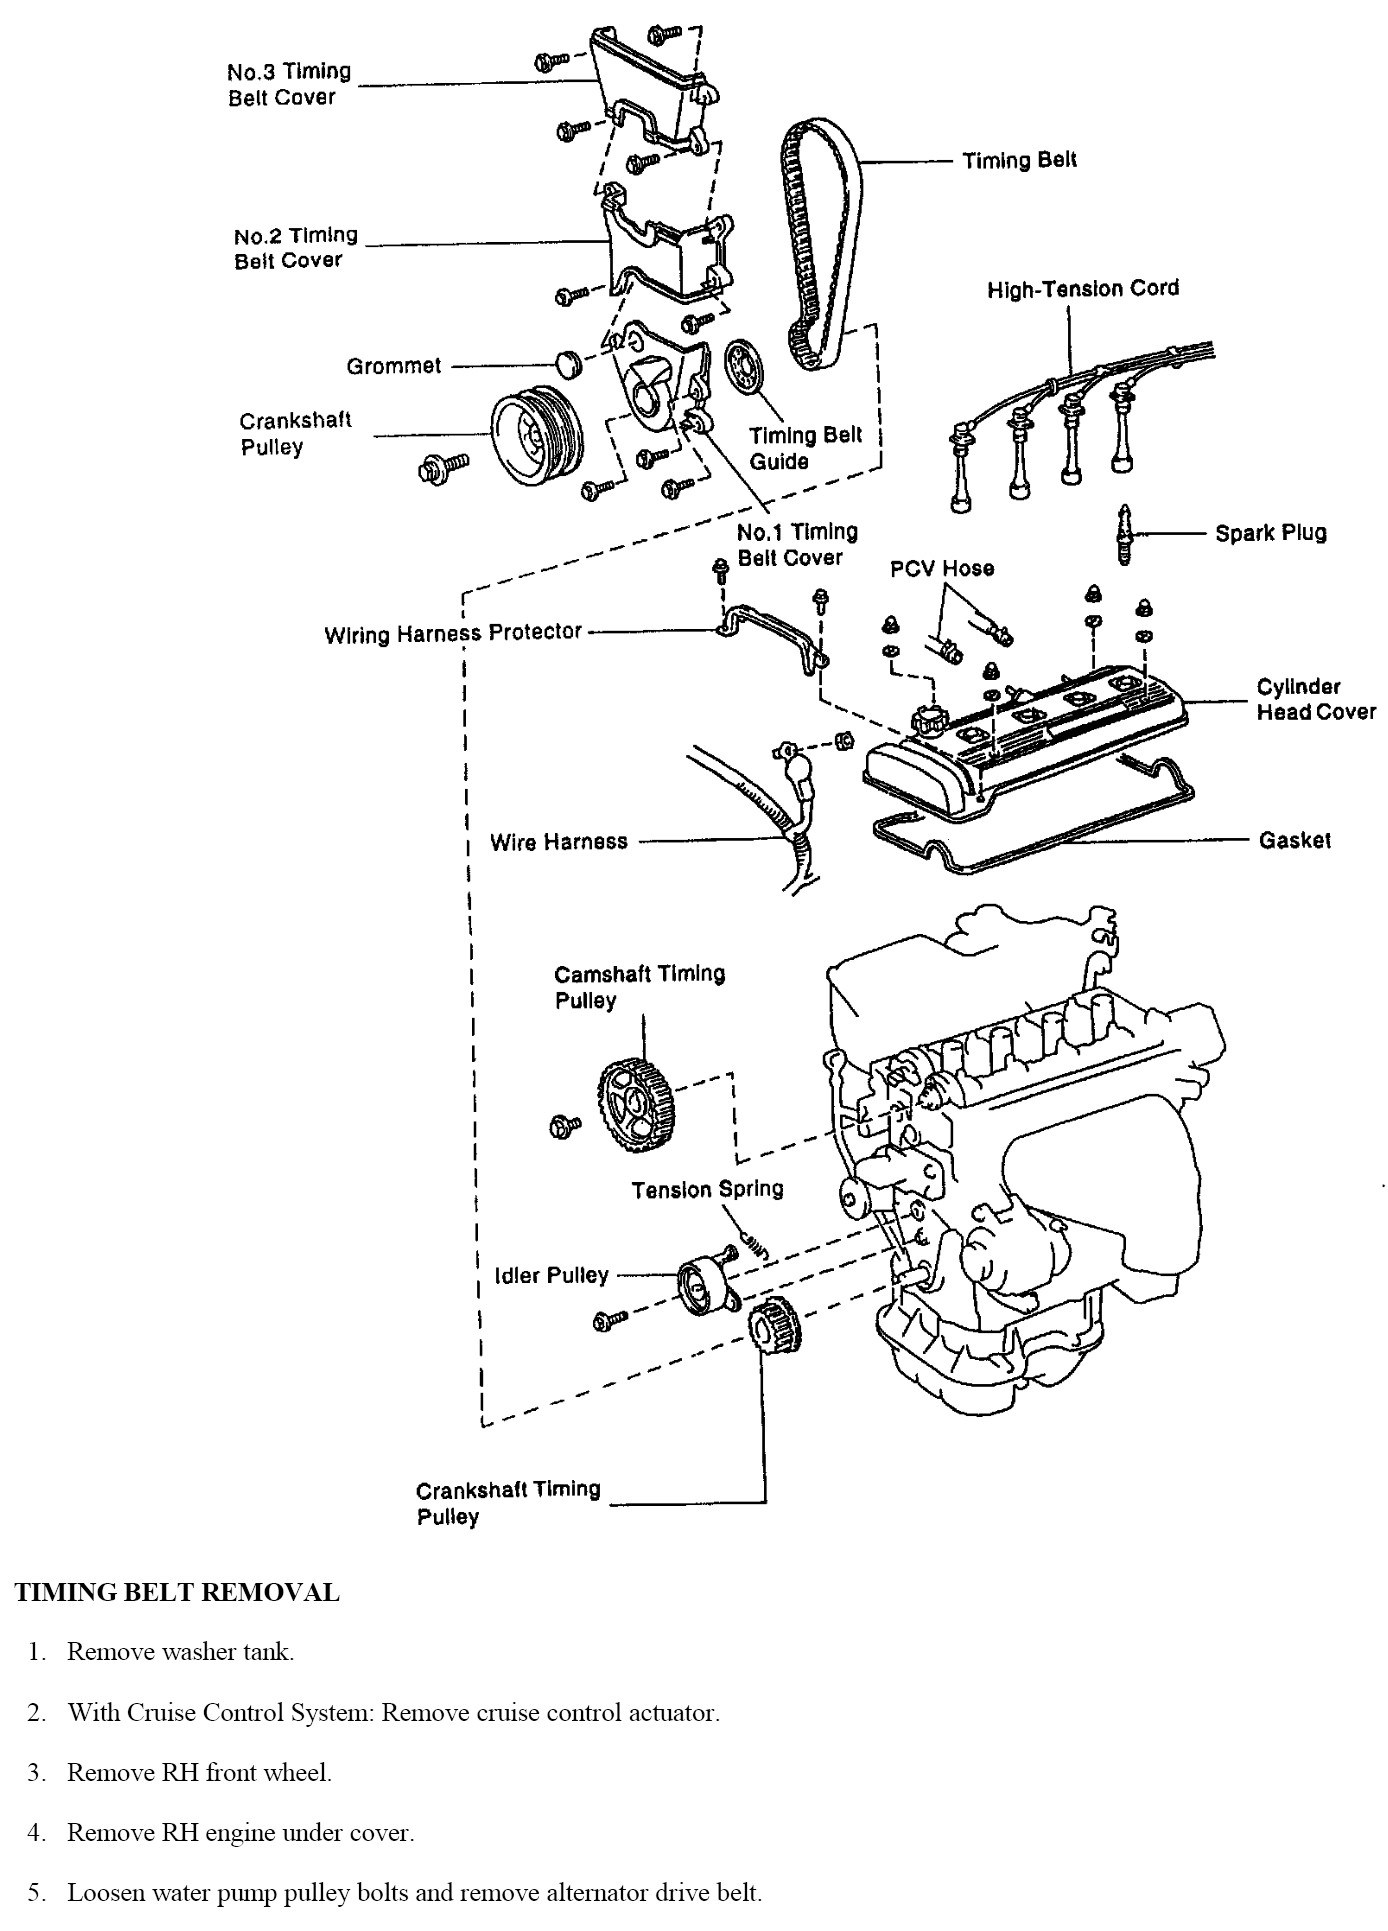 1994 Acura Legend Serpentine Belt Routing And Timing Belt Diagrams